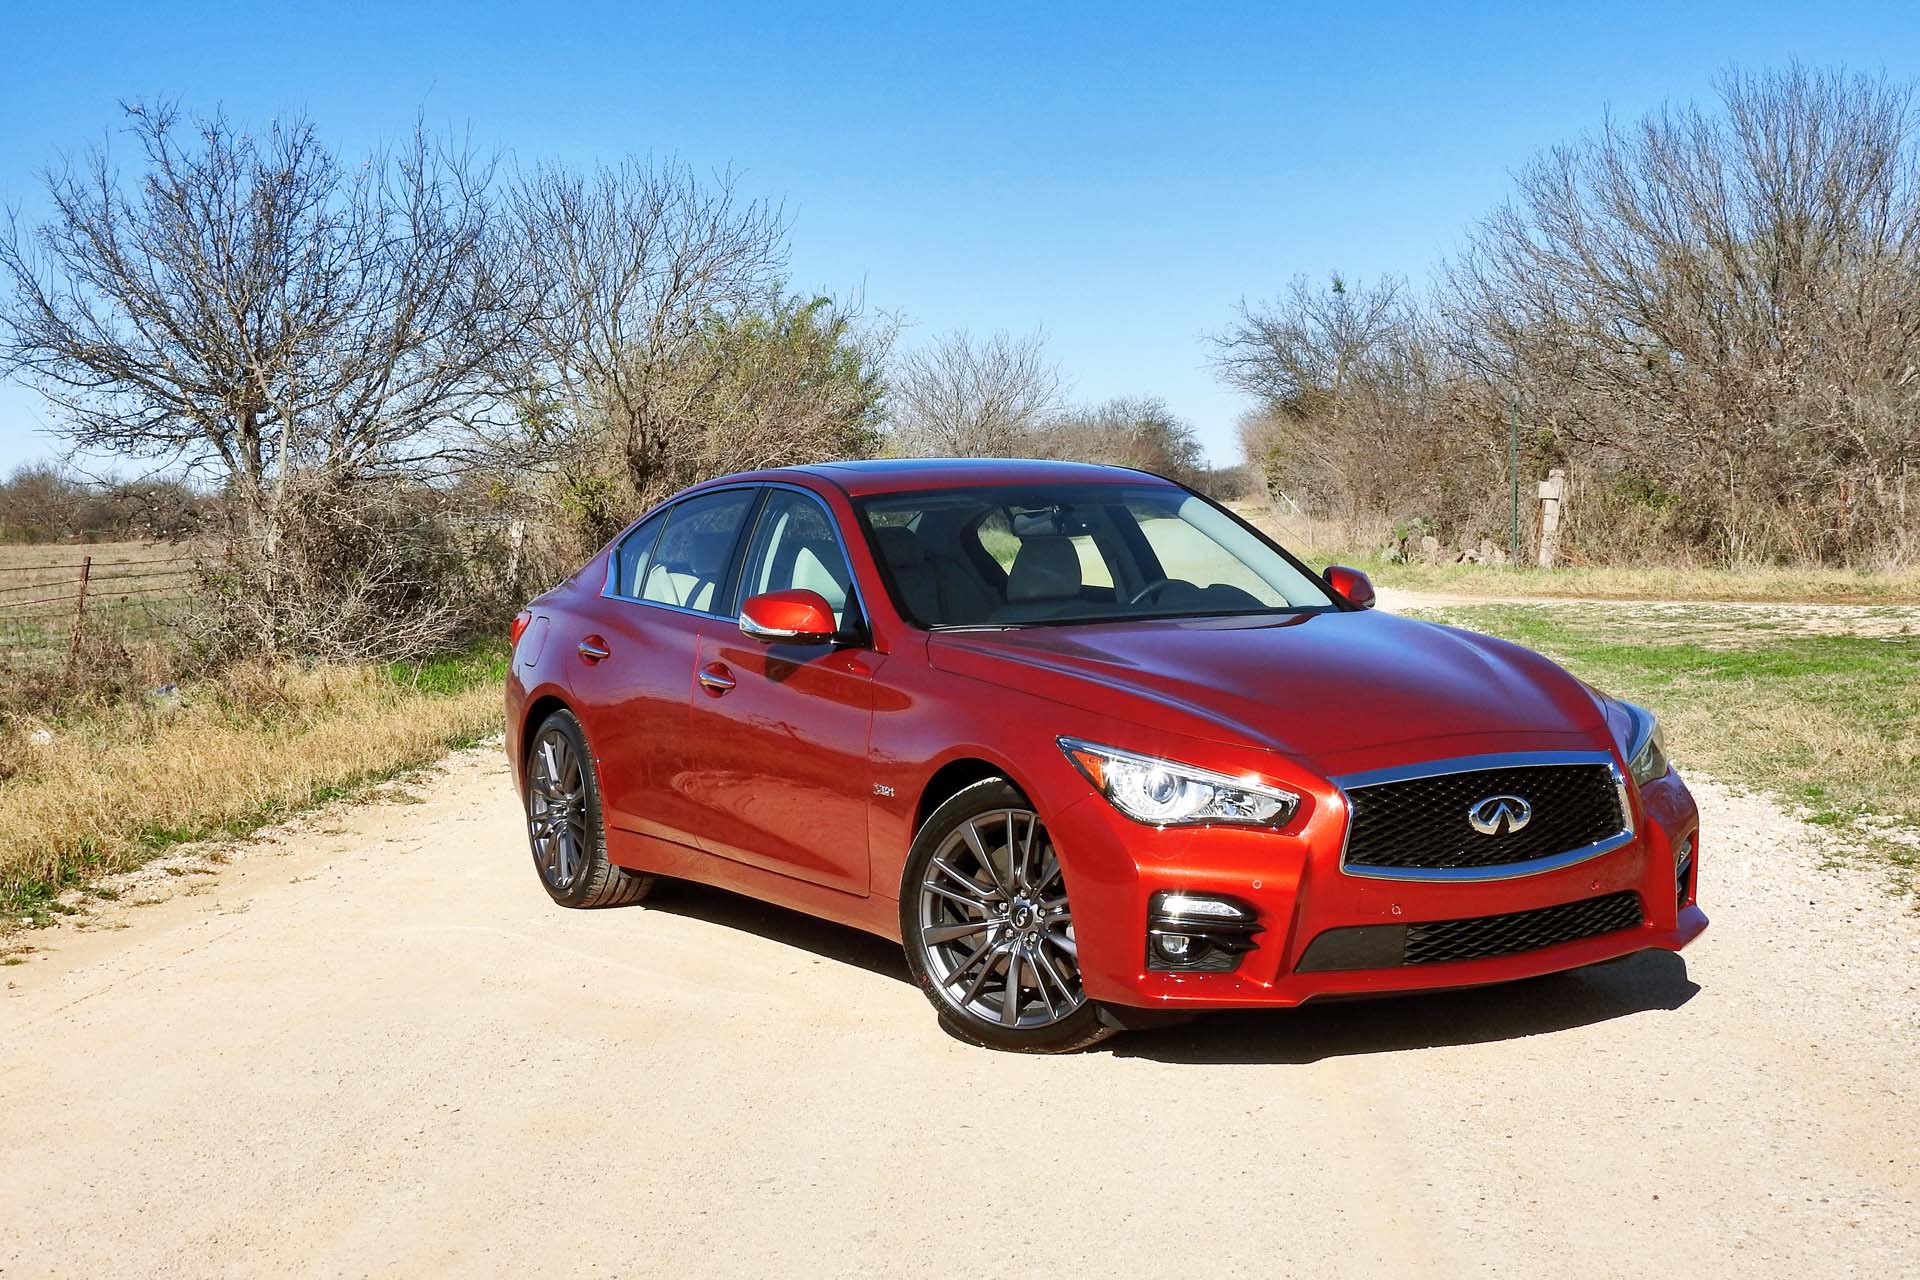 infiniti q50 sport test drives autos weblog. Black Bedroom Furniture Sets. Home Design Ideas